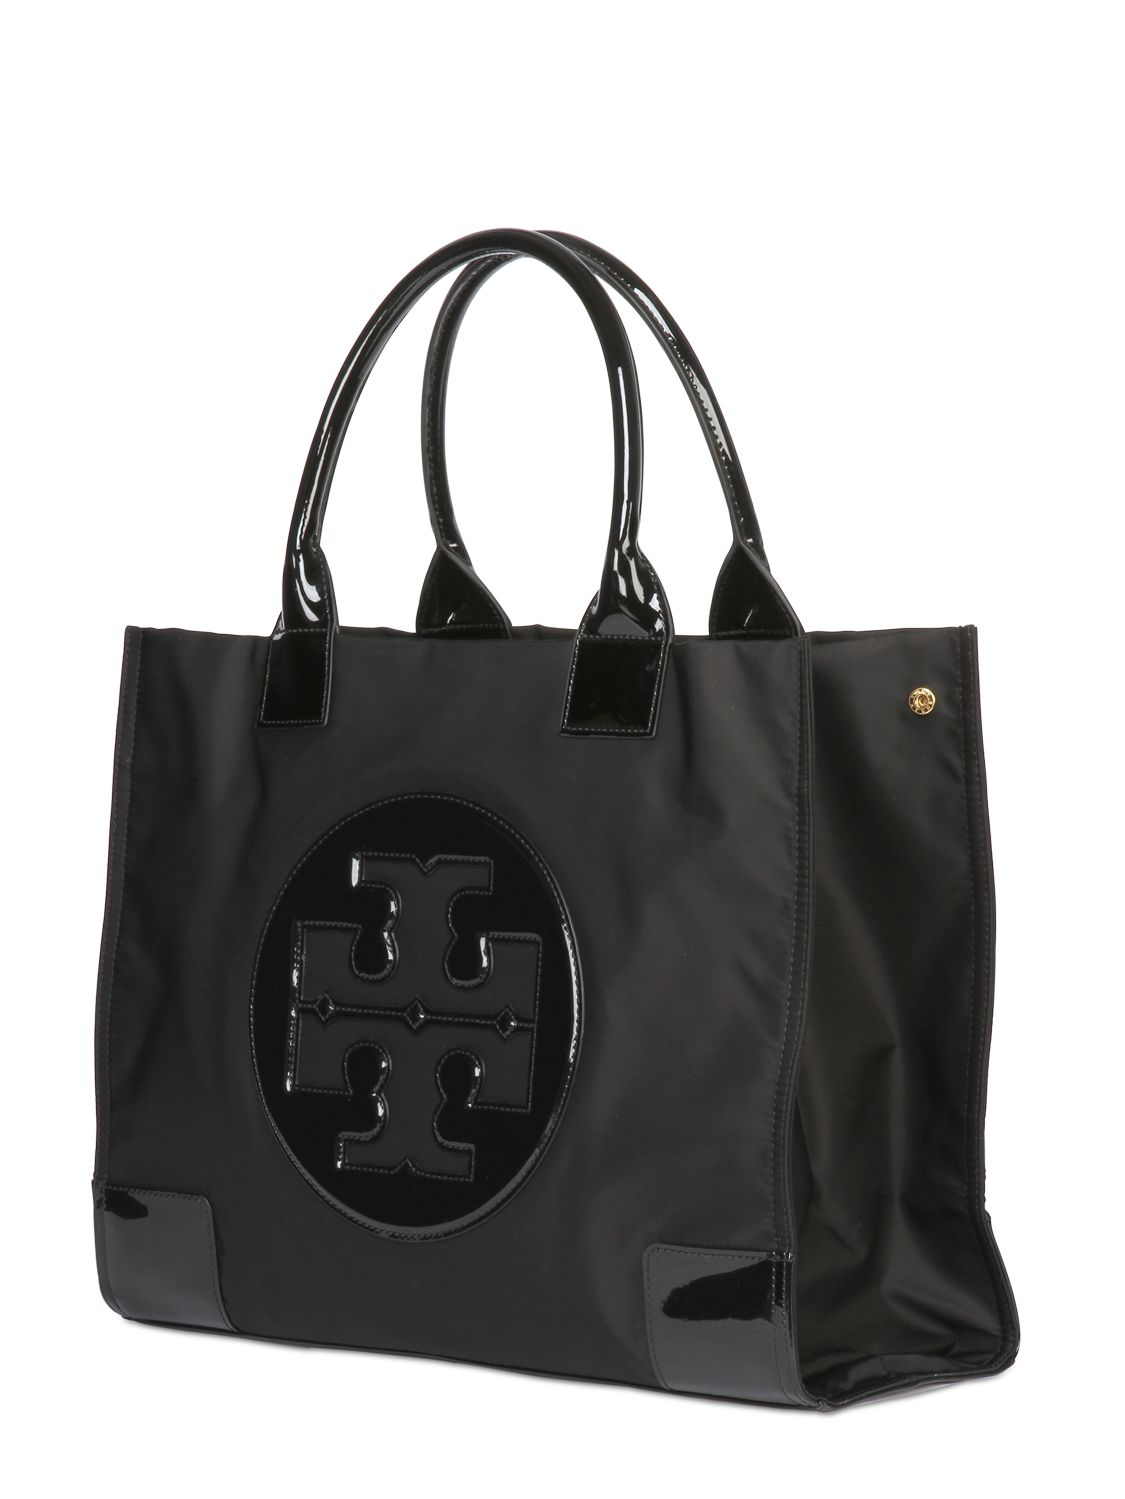 Tory Burch Large Ella Nylon Amp Patent Leather Tote In Black